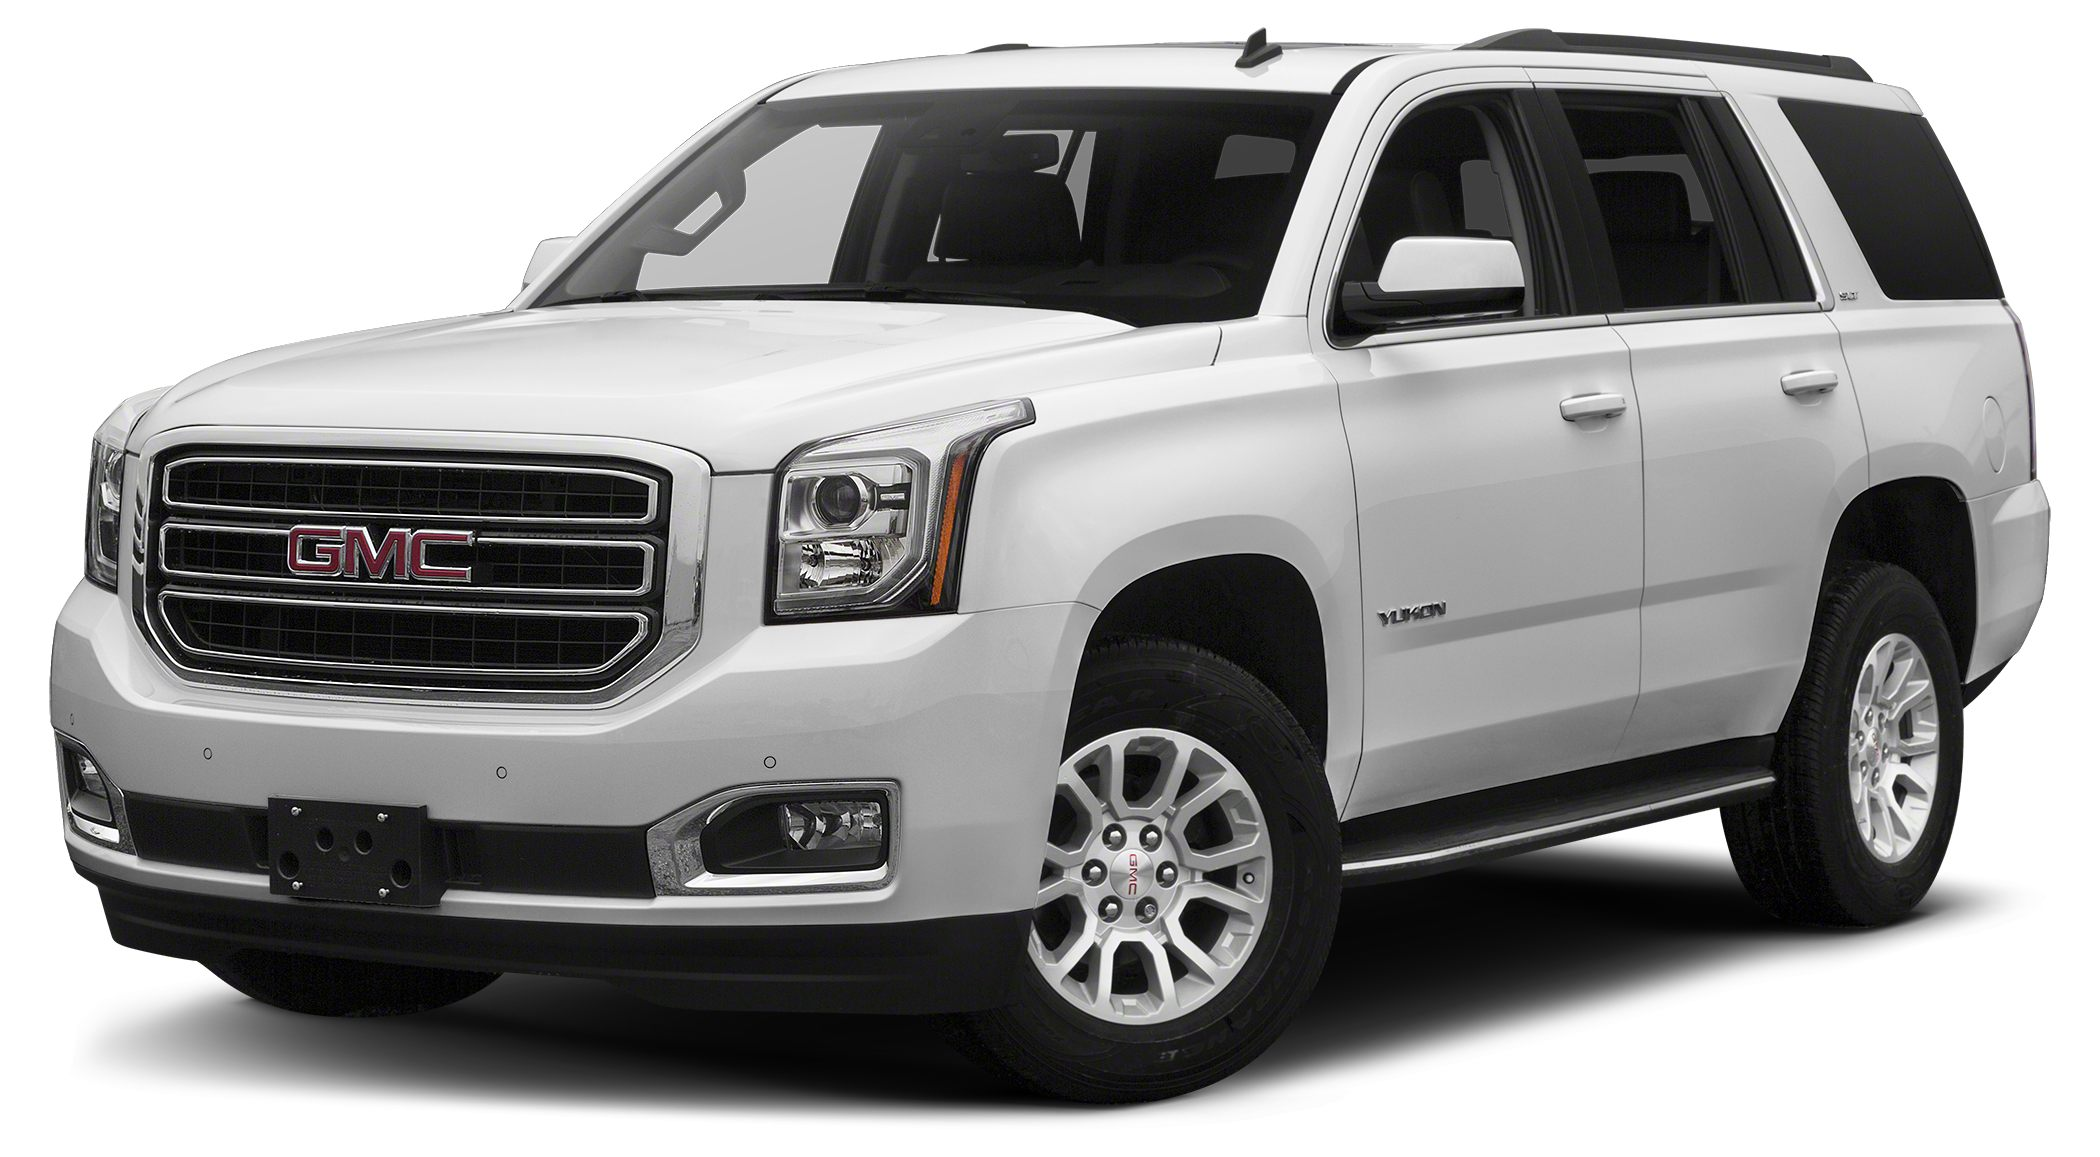 2017 GMC Yukon SLT Miles 5Color Summit White Stock GH346719 VIN 1GKS1BKC6HR346719